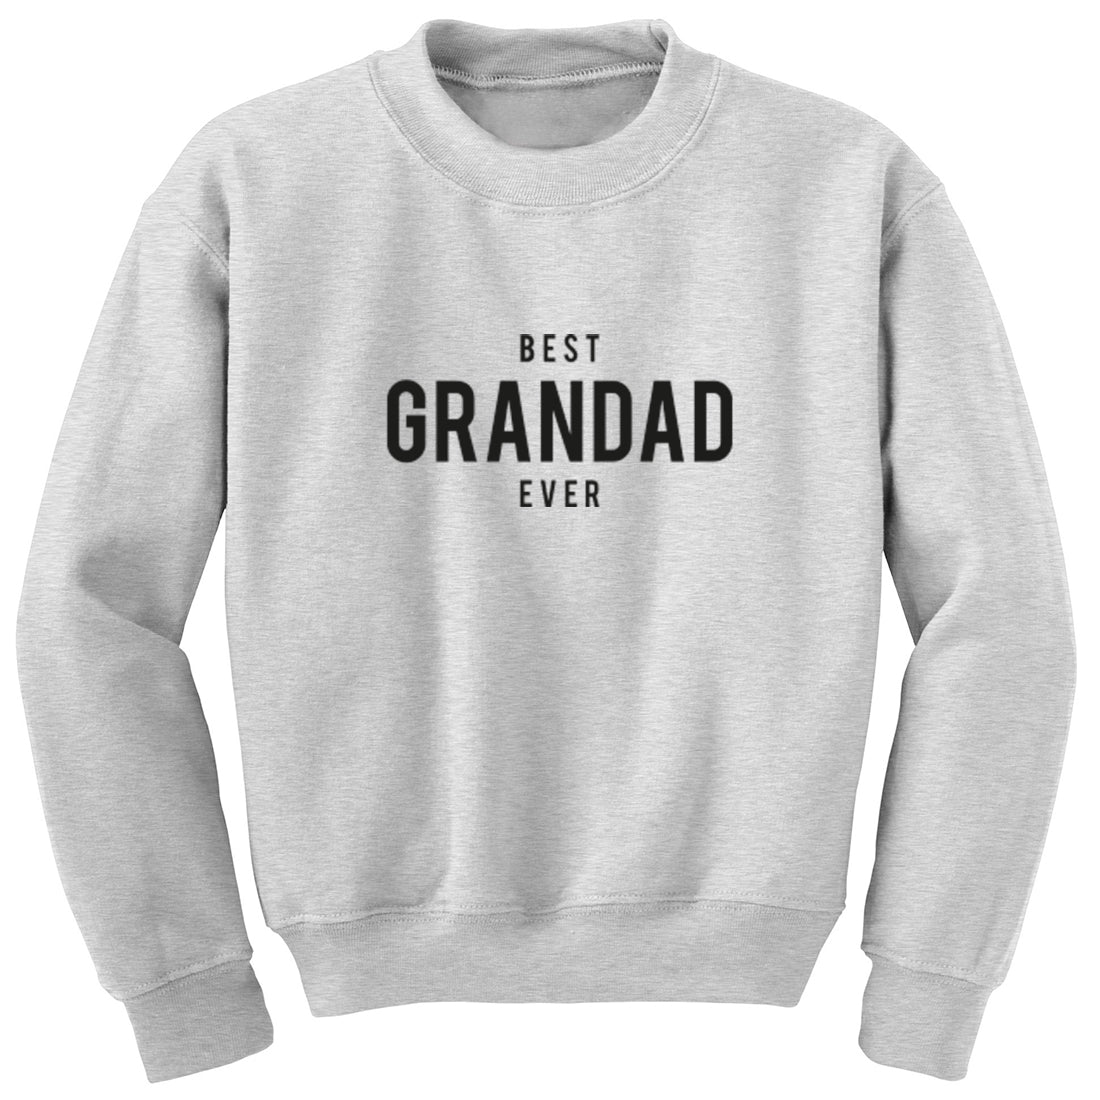 Best Grandad Ever Unisex Jumper K1466 - Illustrated Identity Ltd.